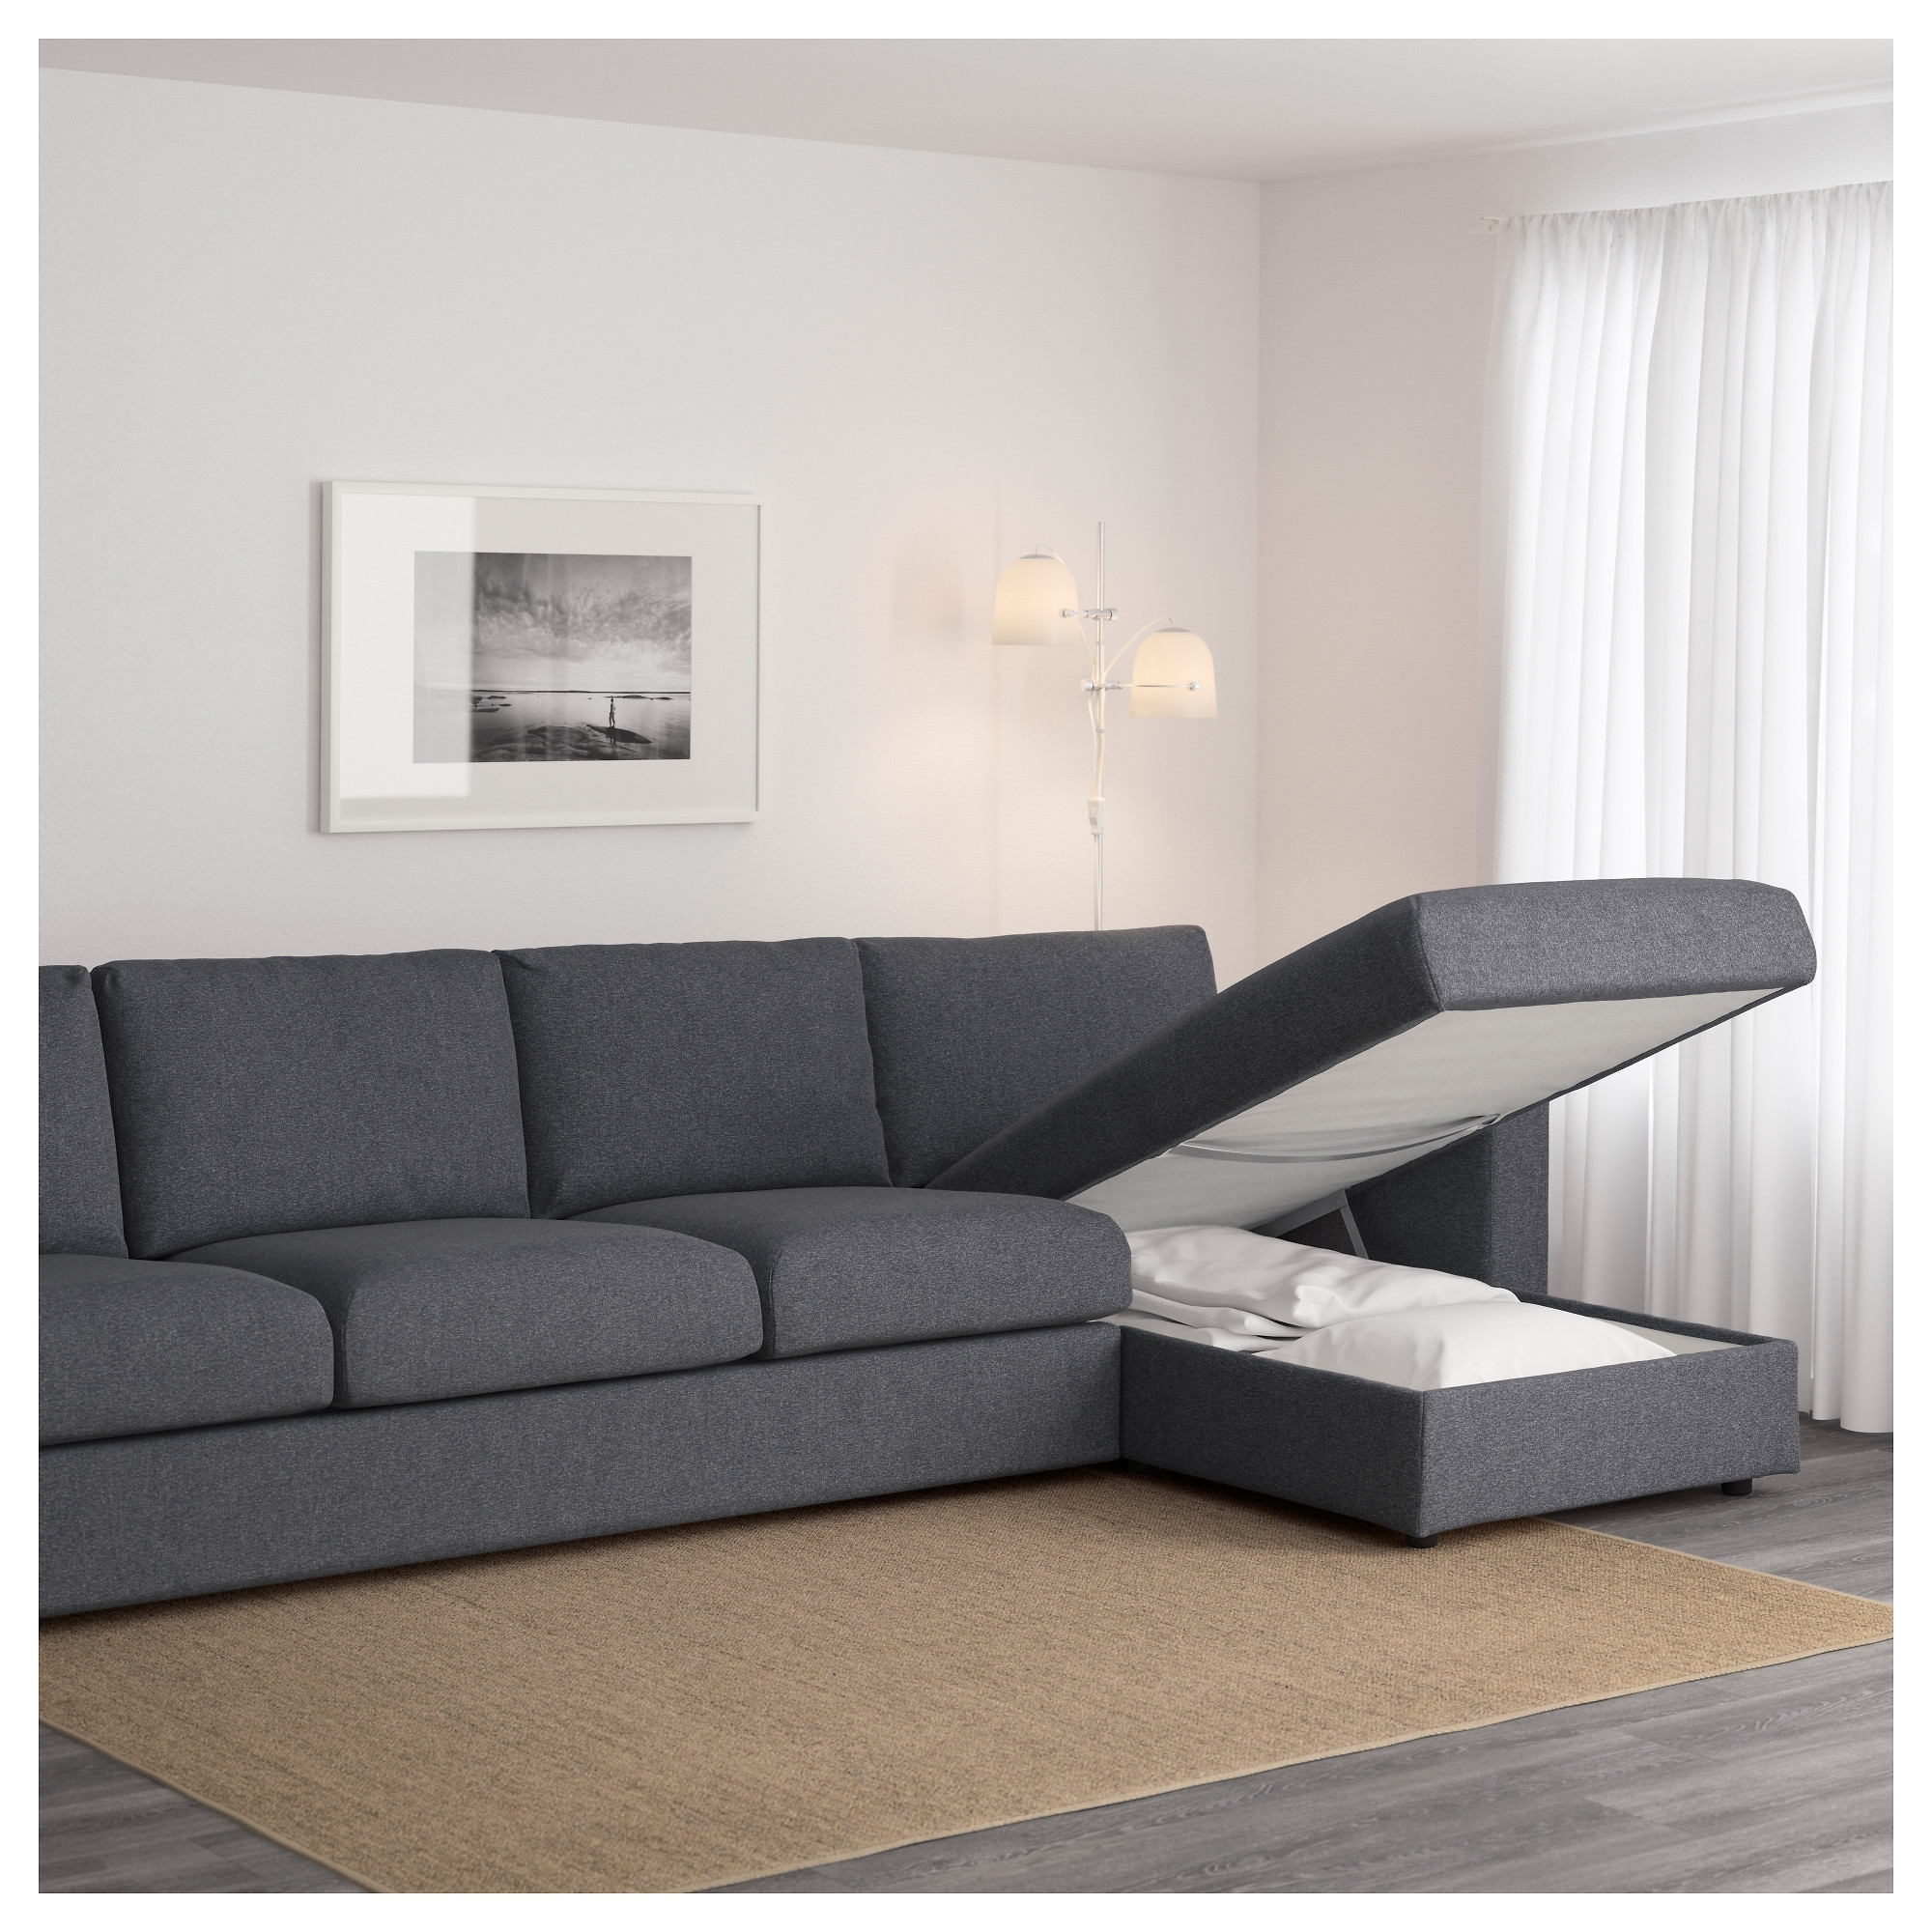 Vimle 4-Seat Sofa With Chaise Longue/gunnared Medium Grey - Ikea intended for 2017 4 Seat Sofas